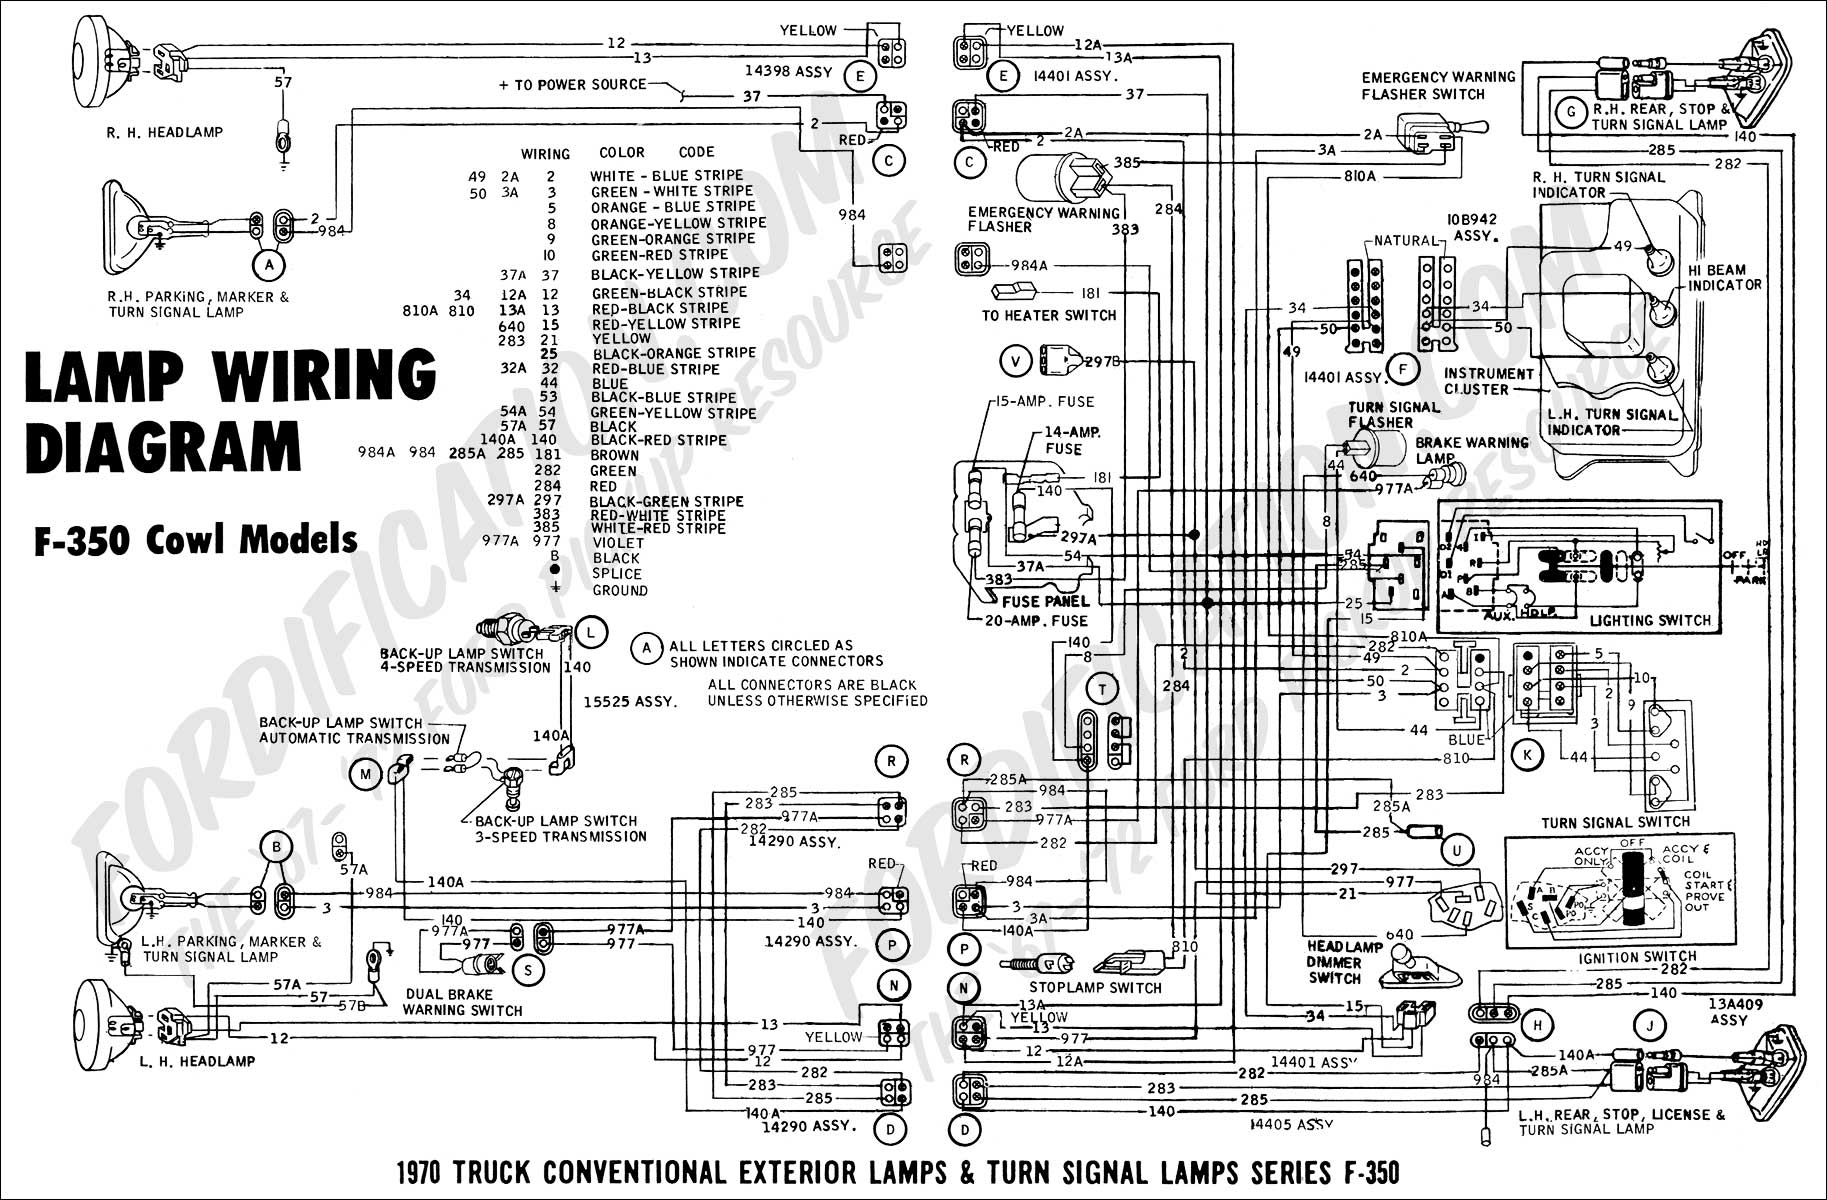 hight resolution of 2003 ford f350 transmission wiring diagram detailed schematics diagram 2004 ford van fuse diagram 2006 ford